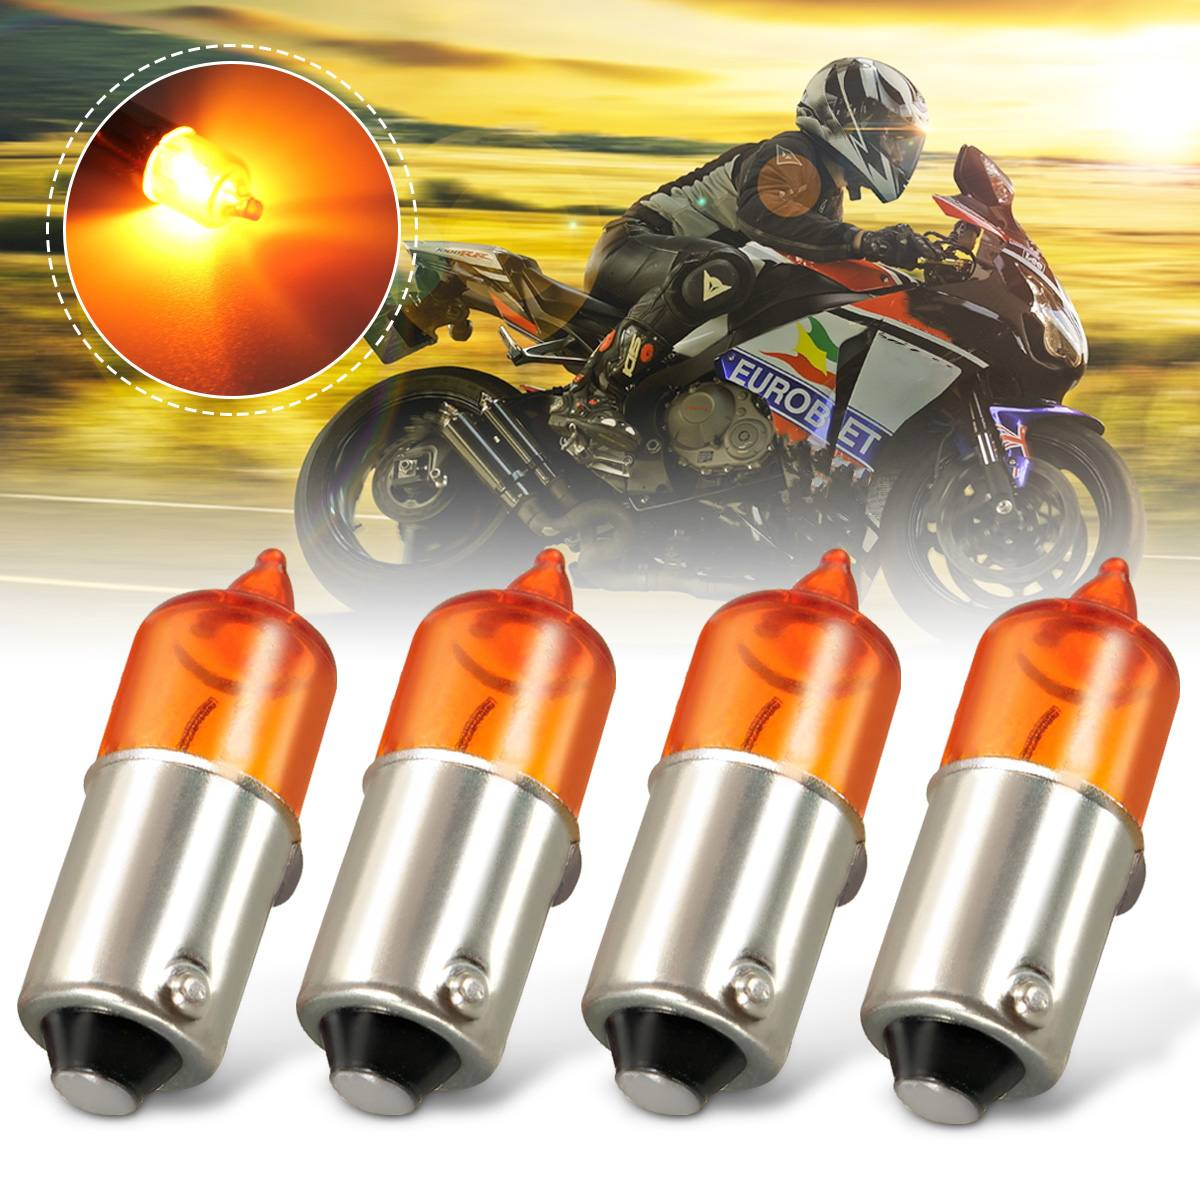 4pcs 12V 23W Amber Universal Mini Miniature Turn Signal Indicator Light Bulbs For Auto Car Motorcycle Motorbike Scooter